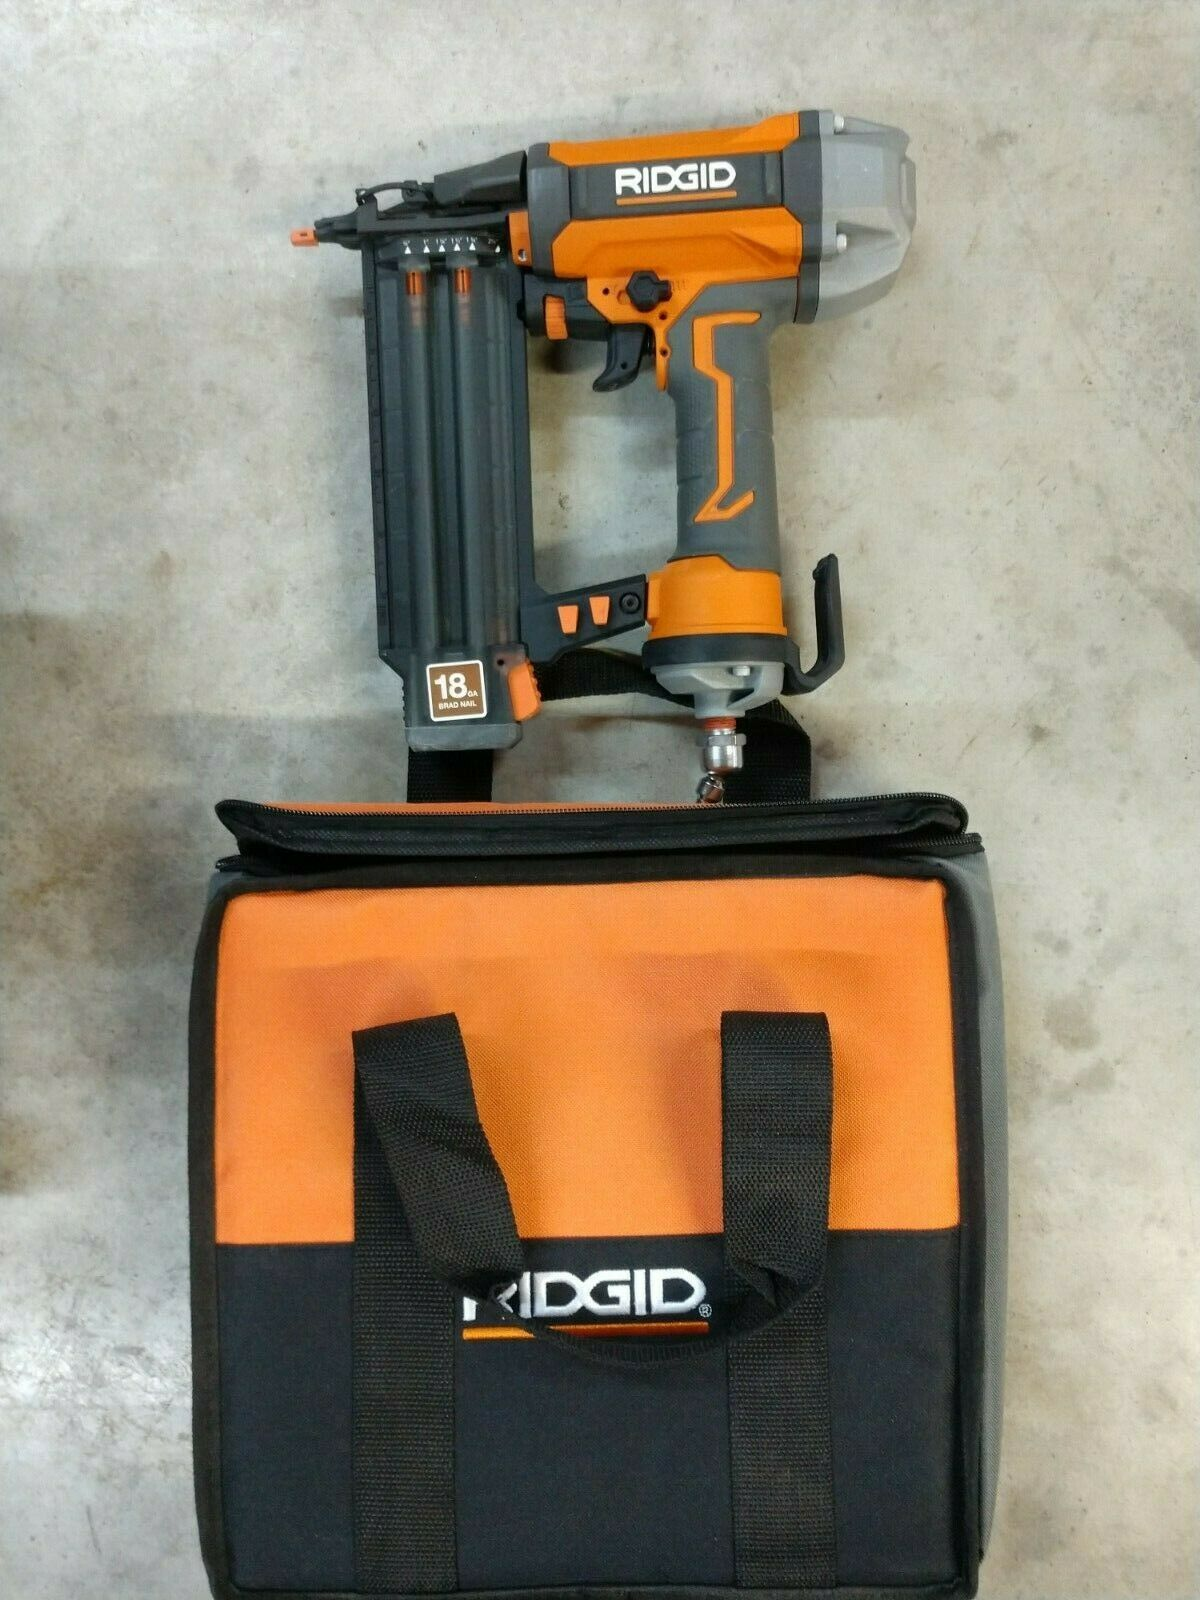 RIDGID 2-1/8 18-Gauge Brad Nailer Model# R213BNF. Available Now for 69.99